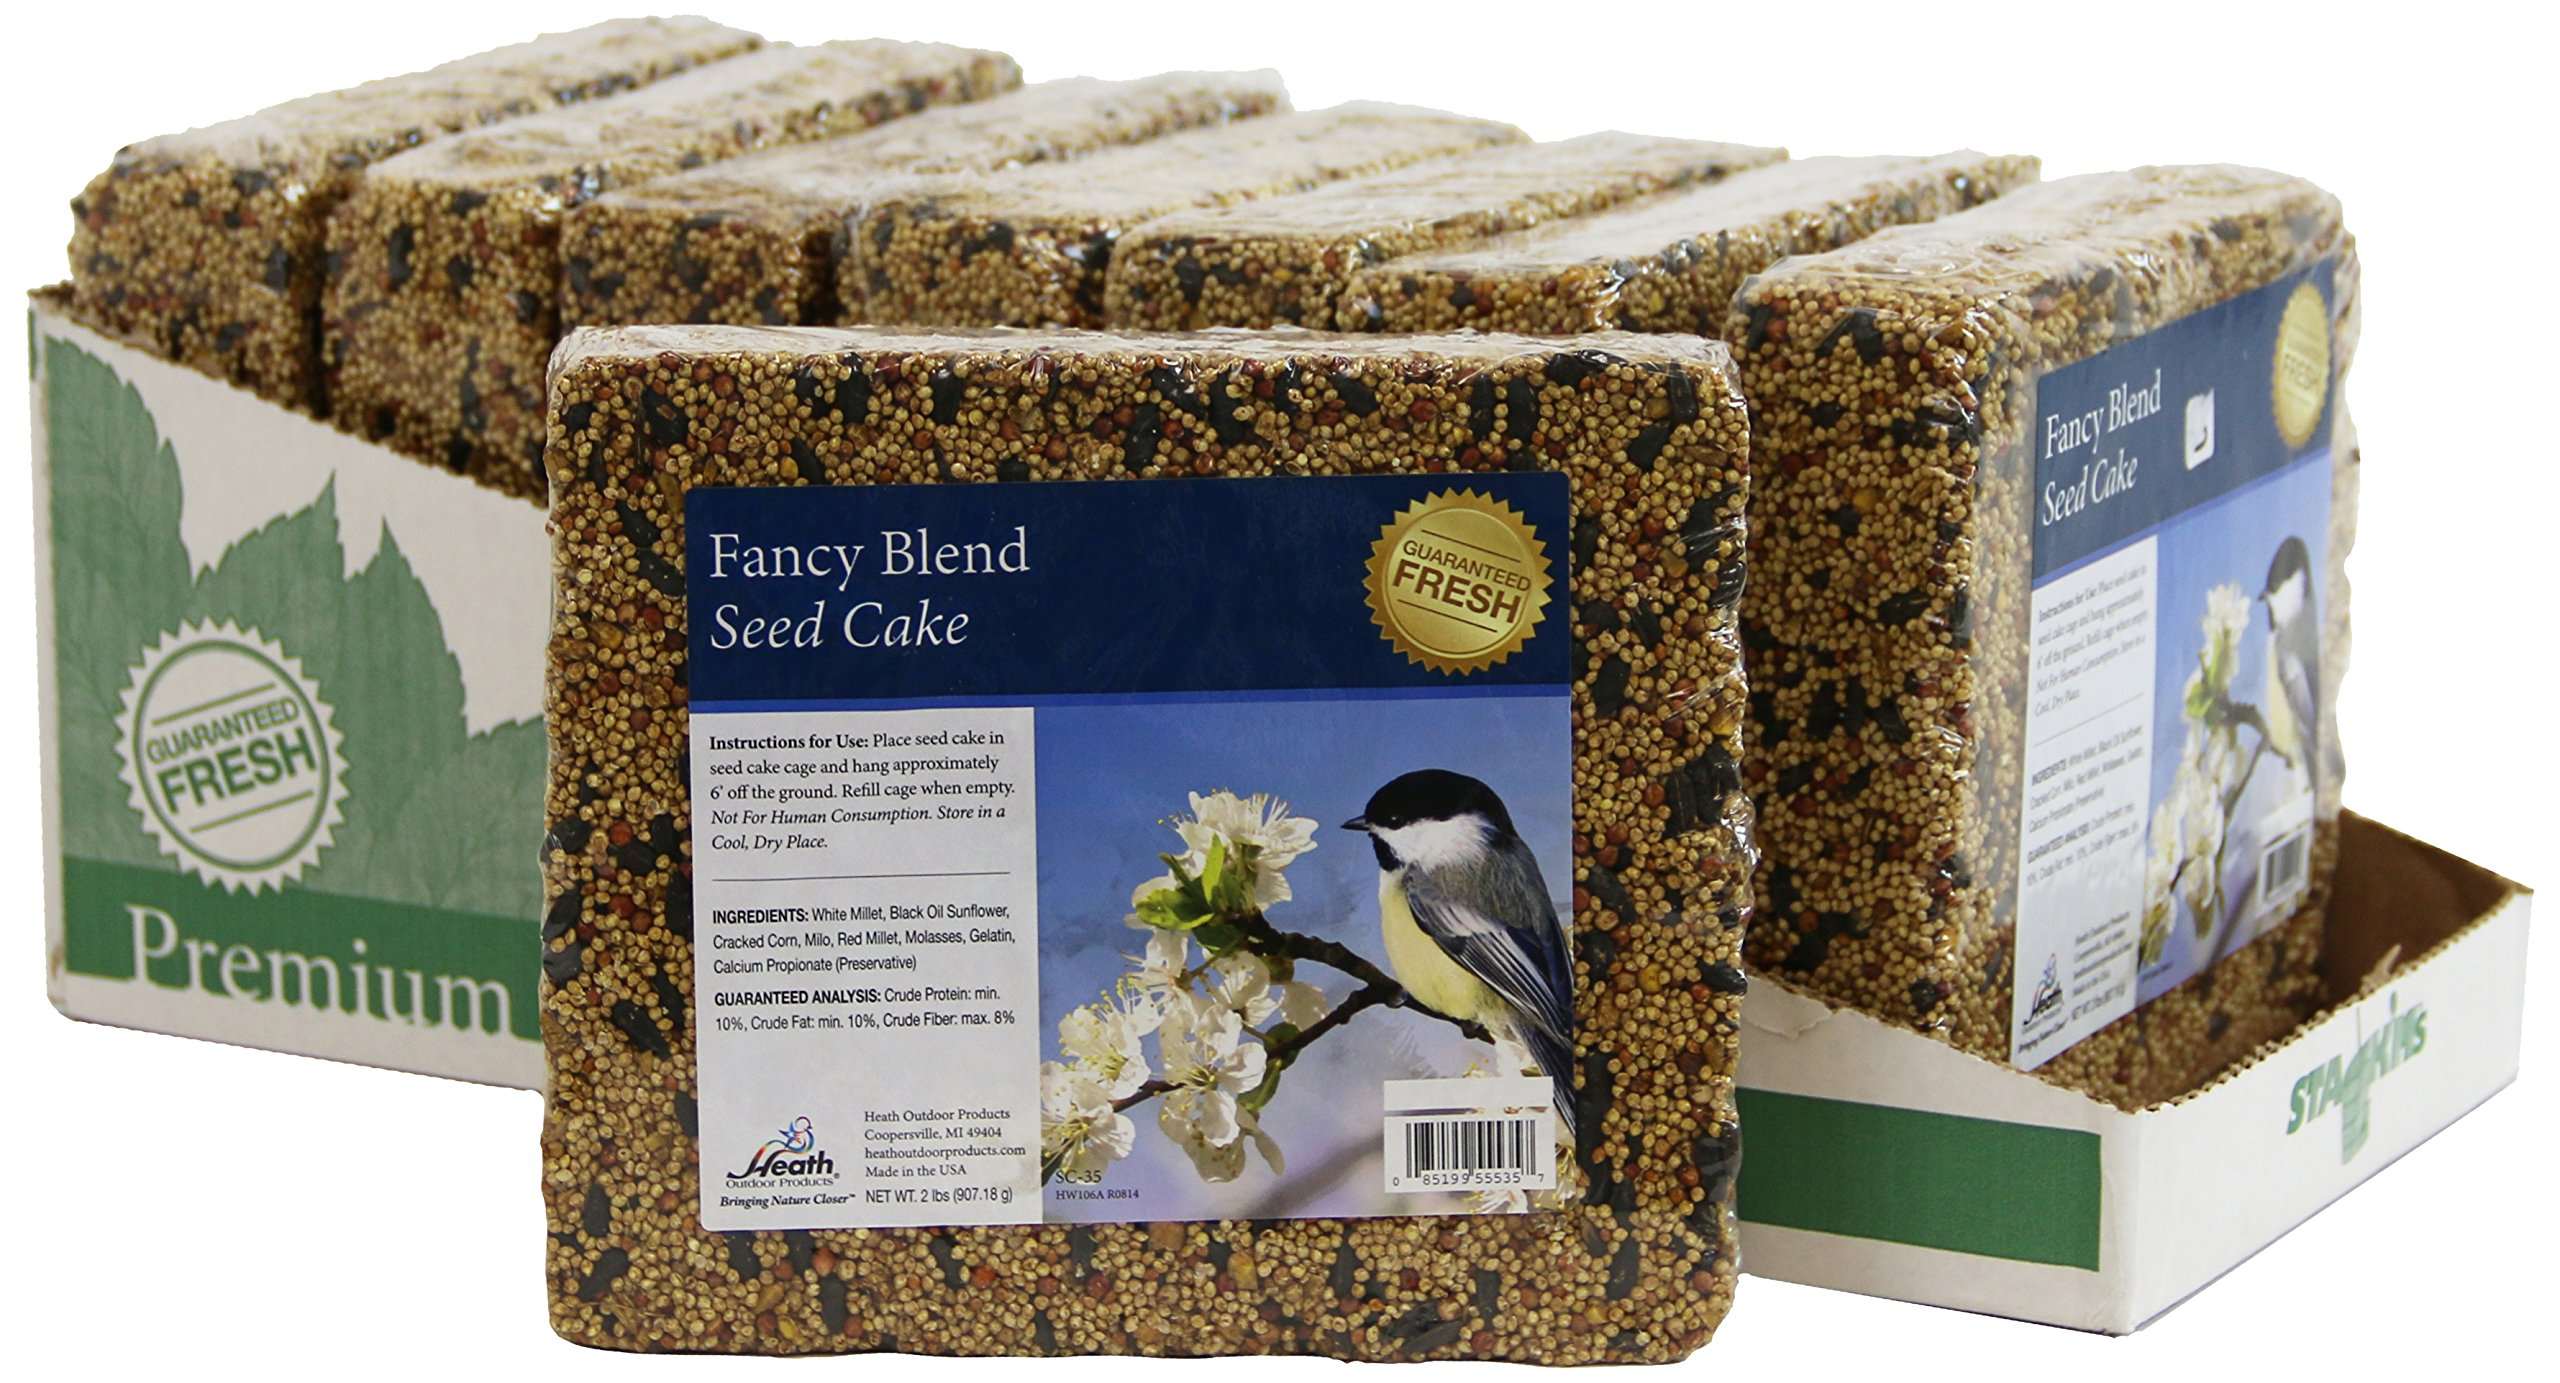 Heath Outdoor Products SC-35-8 Fancy Blend 2-Pound Seed Cake, Case of 8 by Heath Outdoor Products